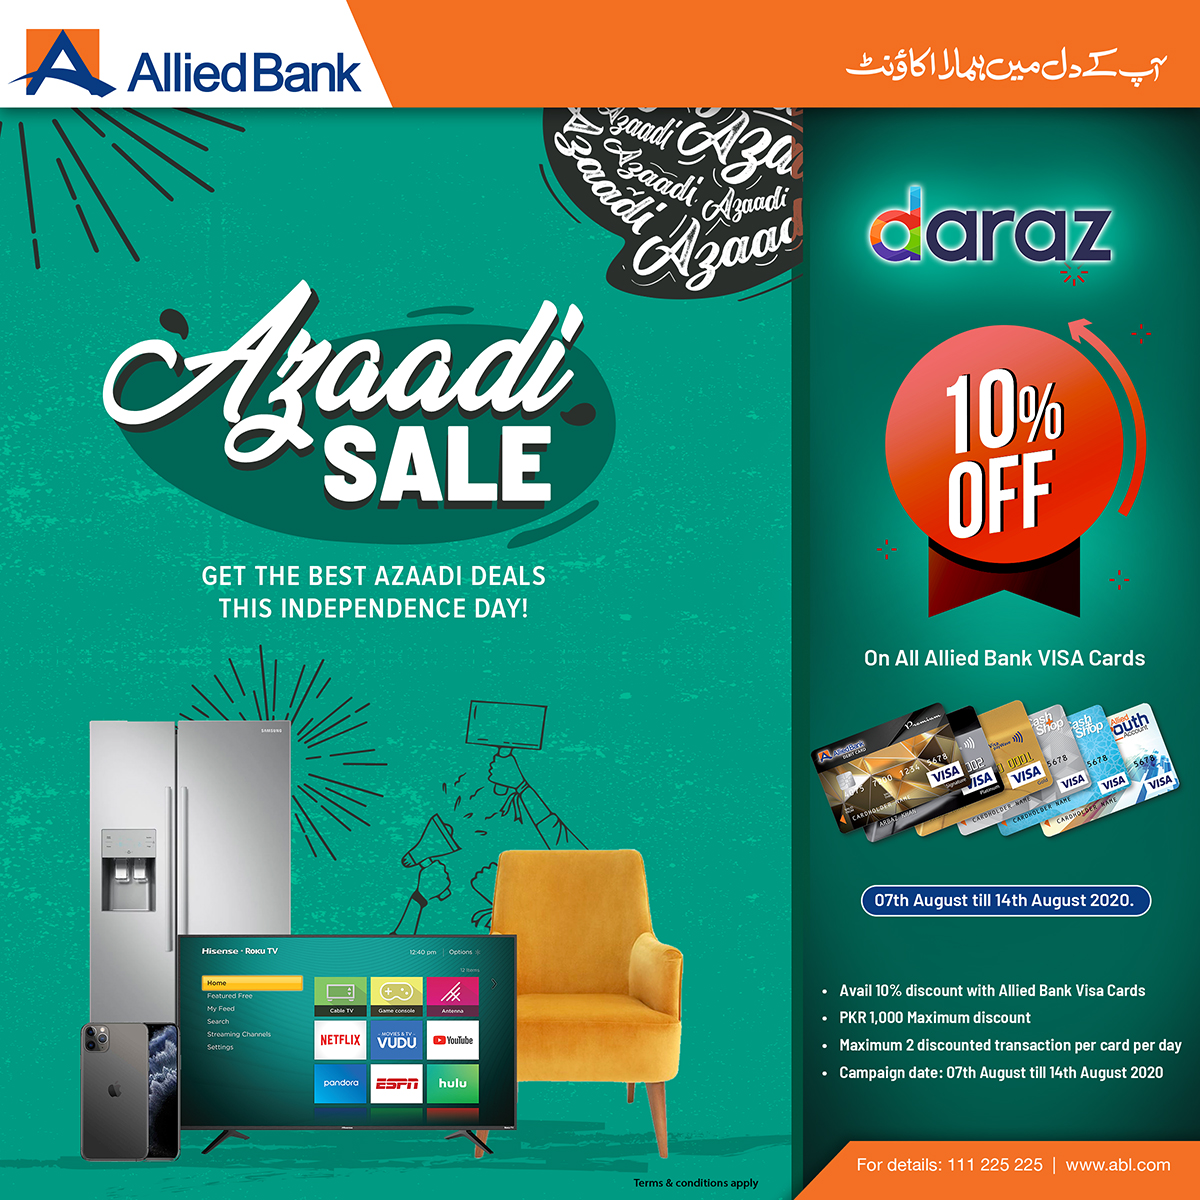 Shop online & enjoy flat 10% discount with ABL VISA Cards at https://t.co/bT8W03c4J1  Offer valid from 7th Aug till 14th Aug, 2020 For details visit: https://t.co/Ab2NpkxoiW Terms & conditions apply.  #ABL #Daraz #OnlineShopping #ABLDiscounts #Discount #DebitCard #CreditCard https://t.co/wZSXHGWHzB